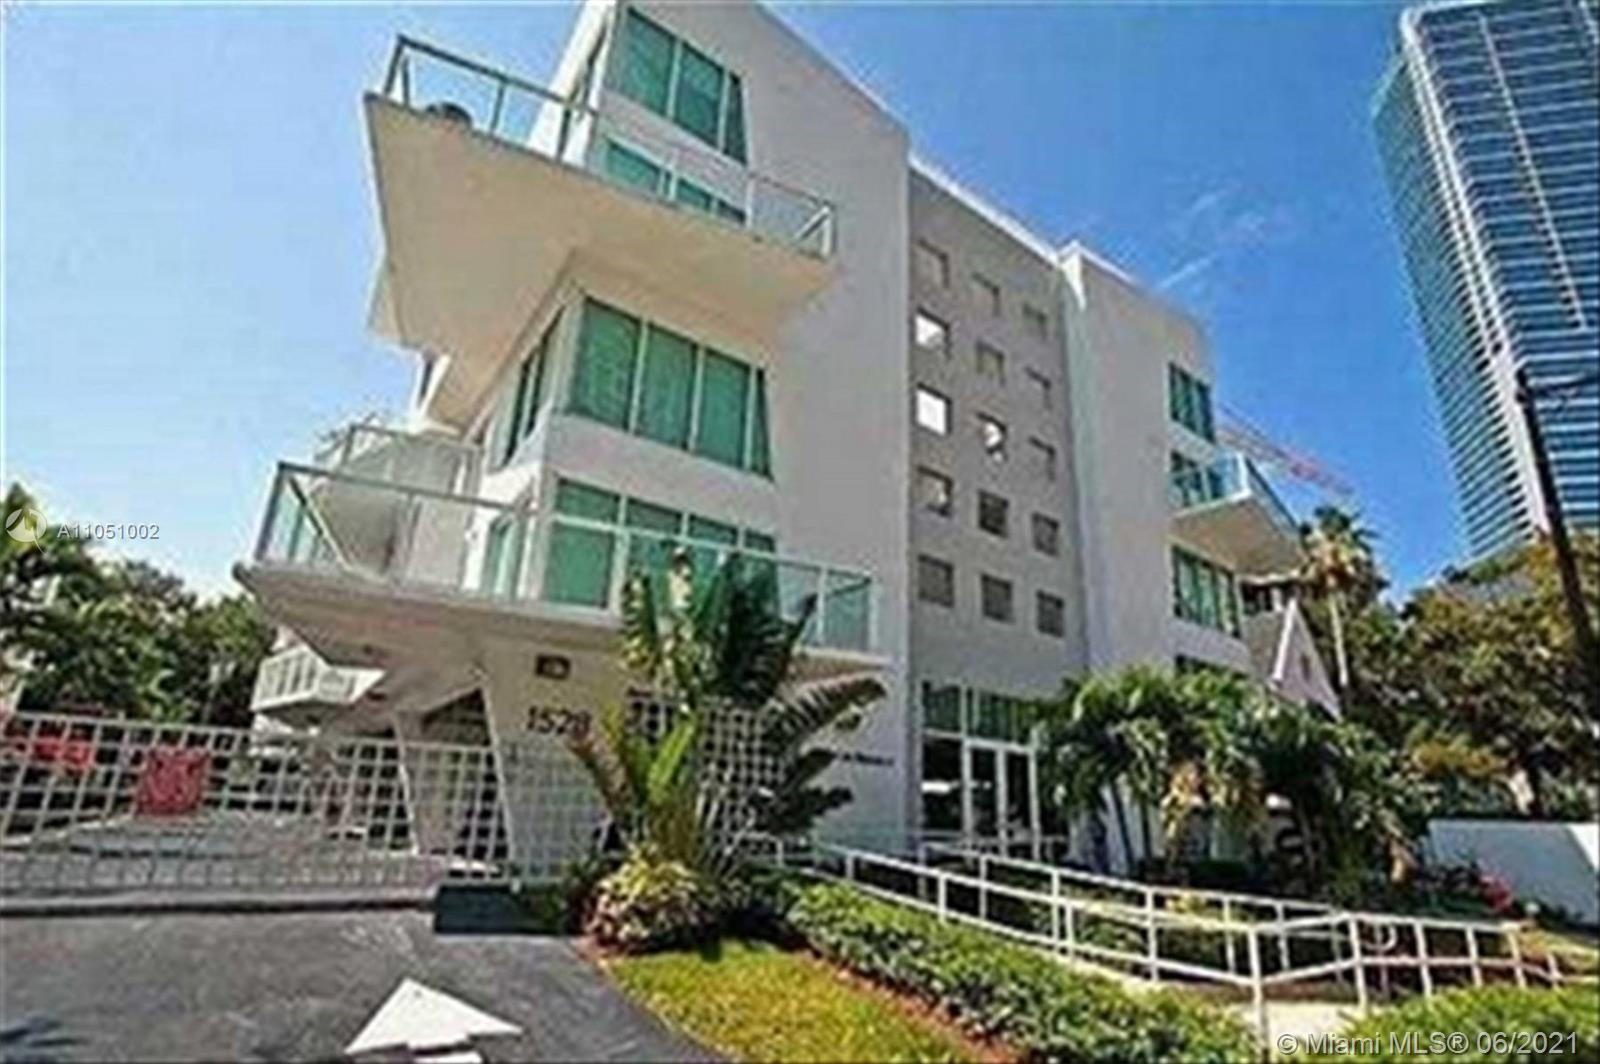 Boutique building in the best part of Brickell Avenue within walking distance to Brickell shops and